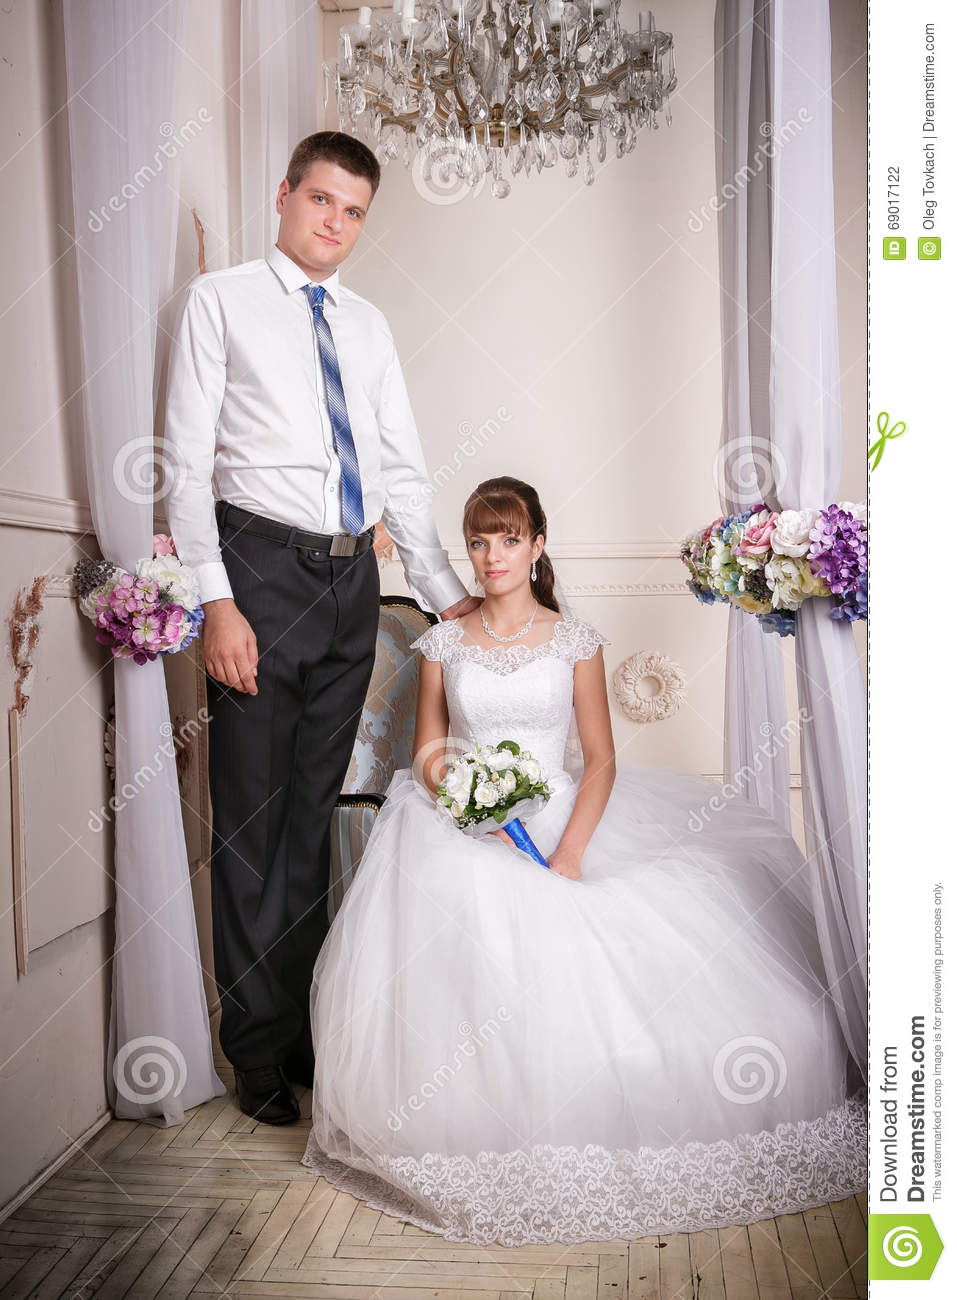 The bride sits in a chair and the groom stands near bride in the room